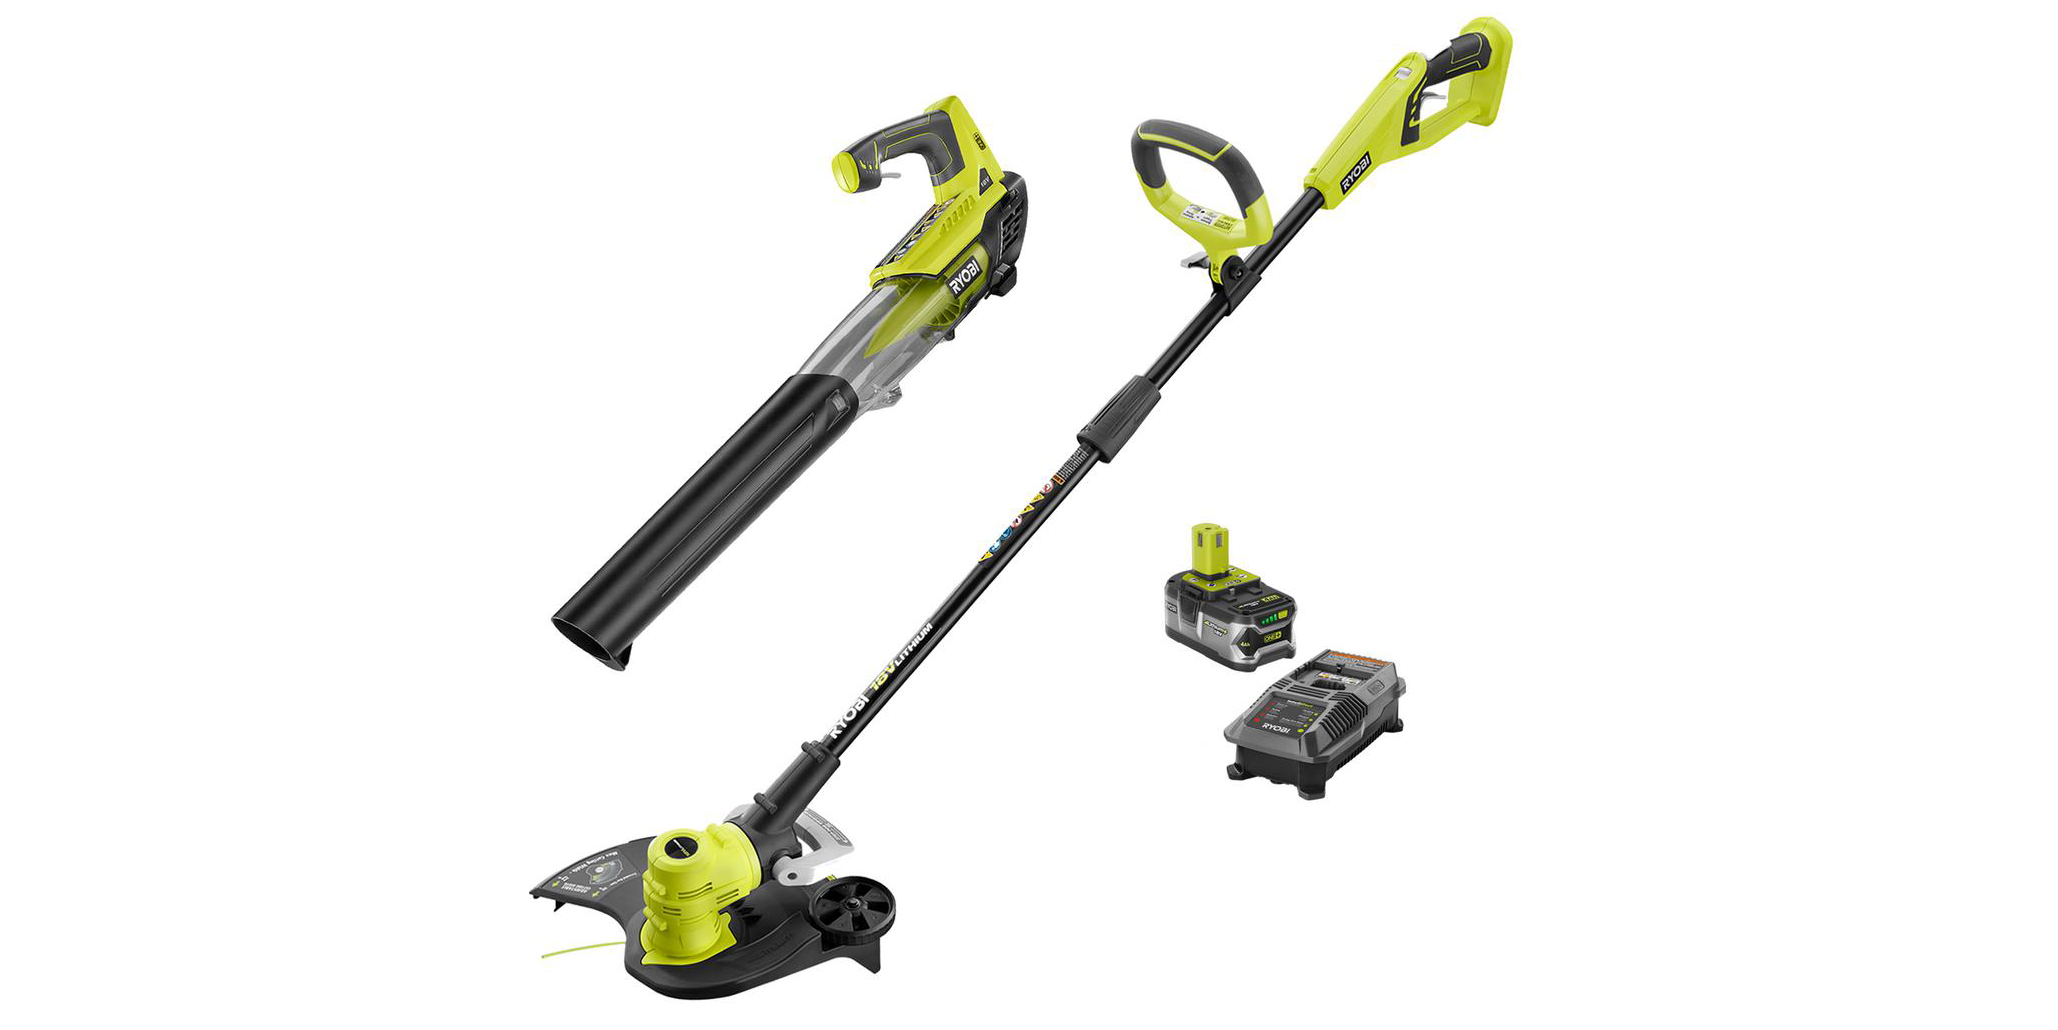 Green Deals: Ryobi ONE+ 18V Electric String Trimmer and